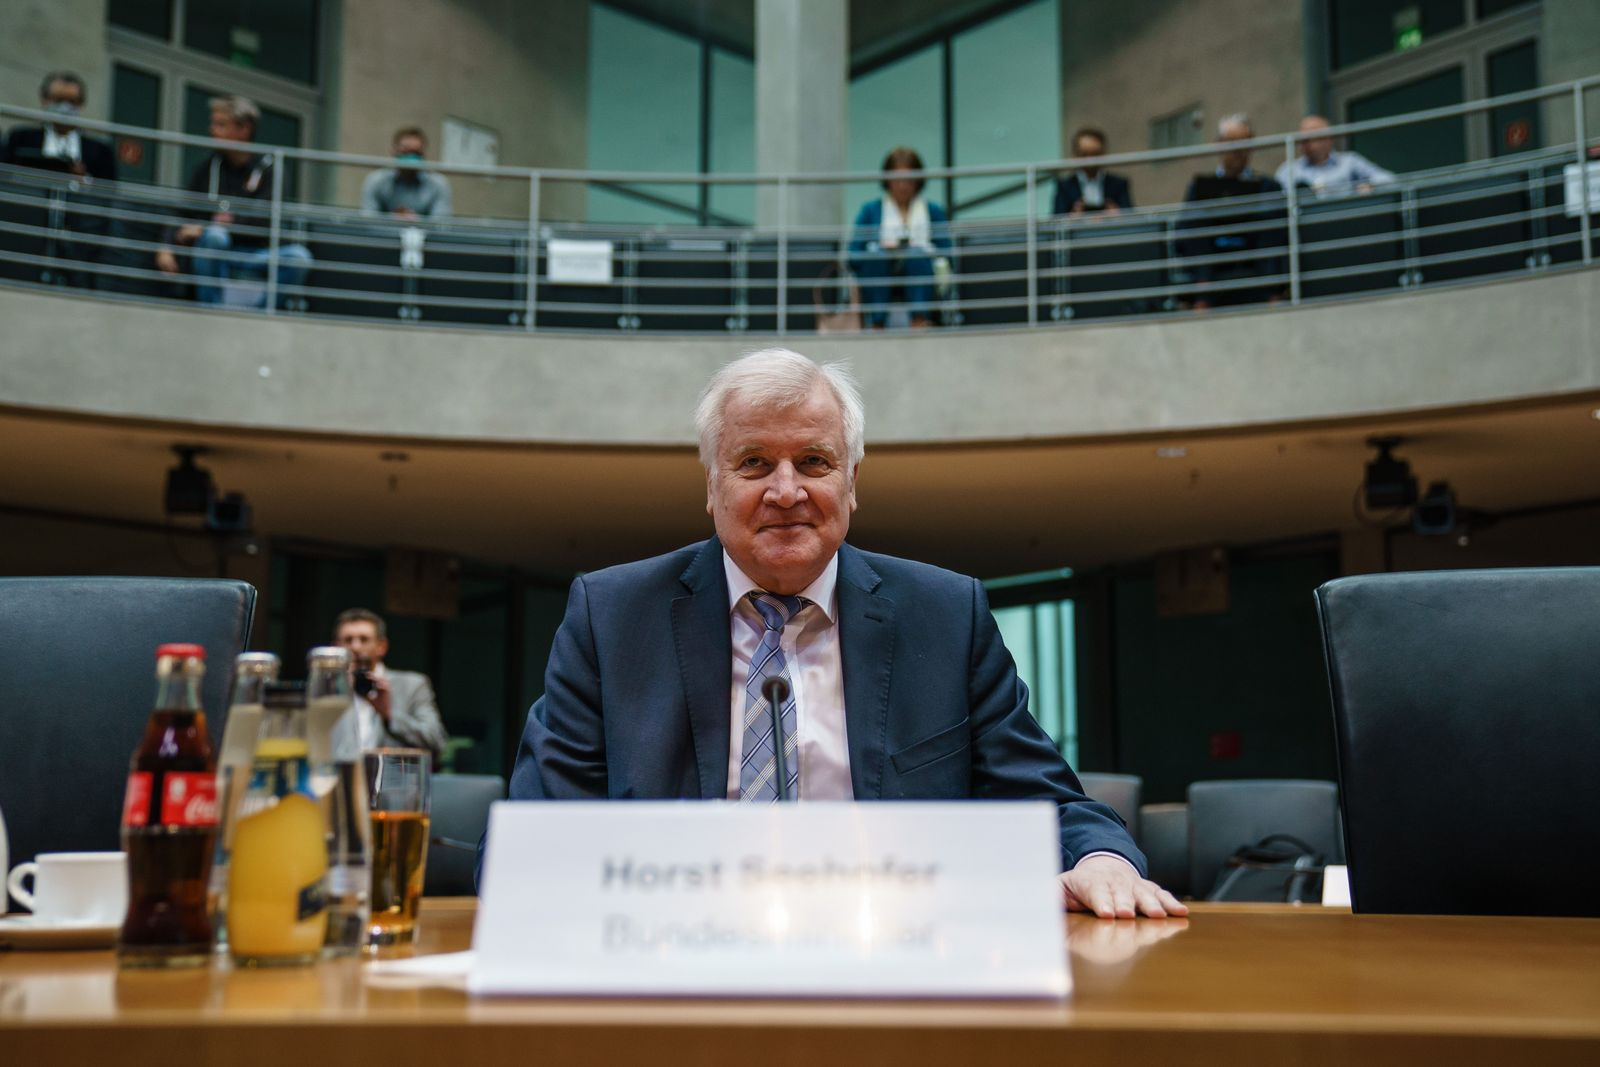 German Minister of Interior, Construction and Homeland Horst Seehofer testifies before car toll committee of inquiry, Berlin, Germany - 28 May 2020